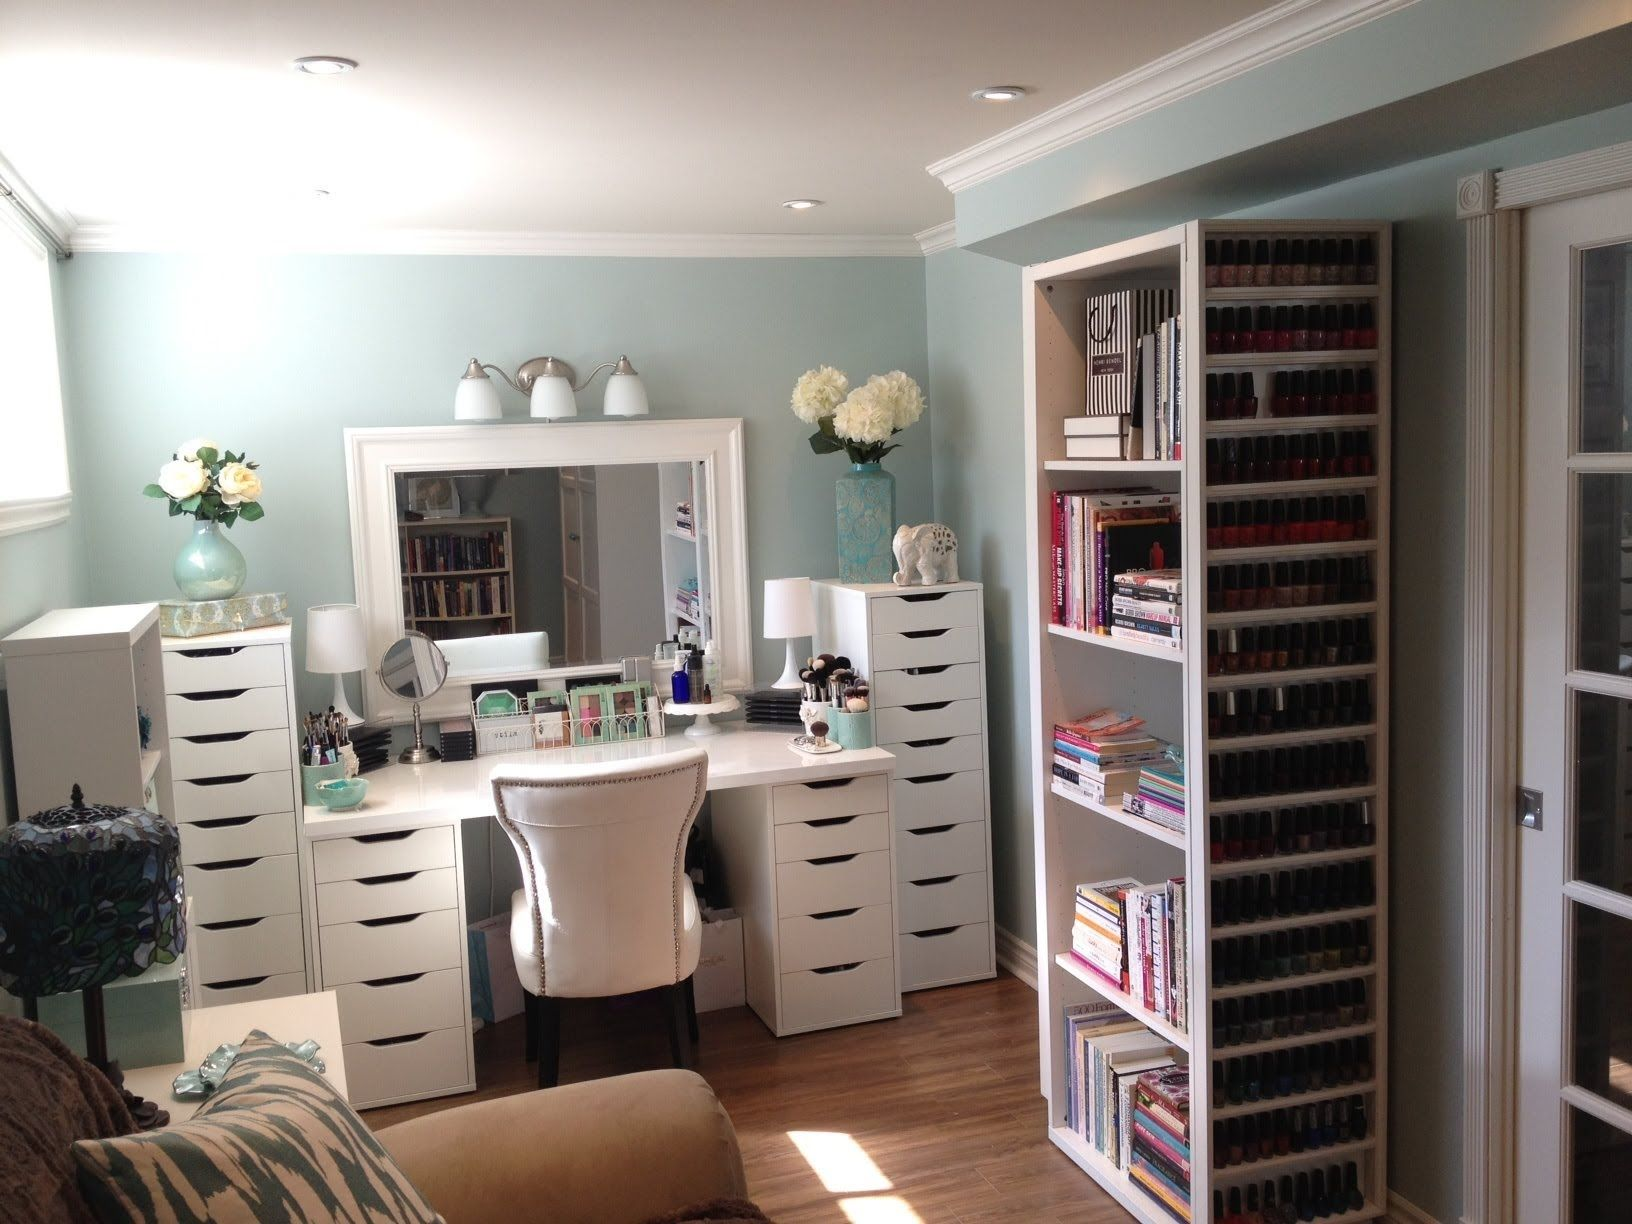 Makeup Room and Makeup Collection, Storage and Organization - July